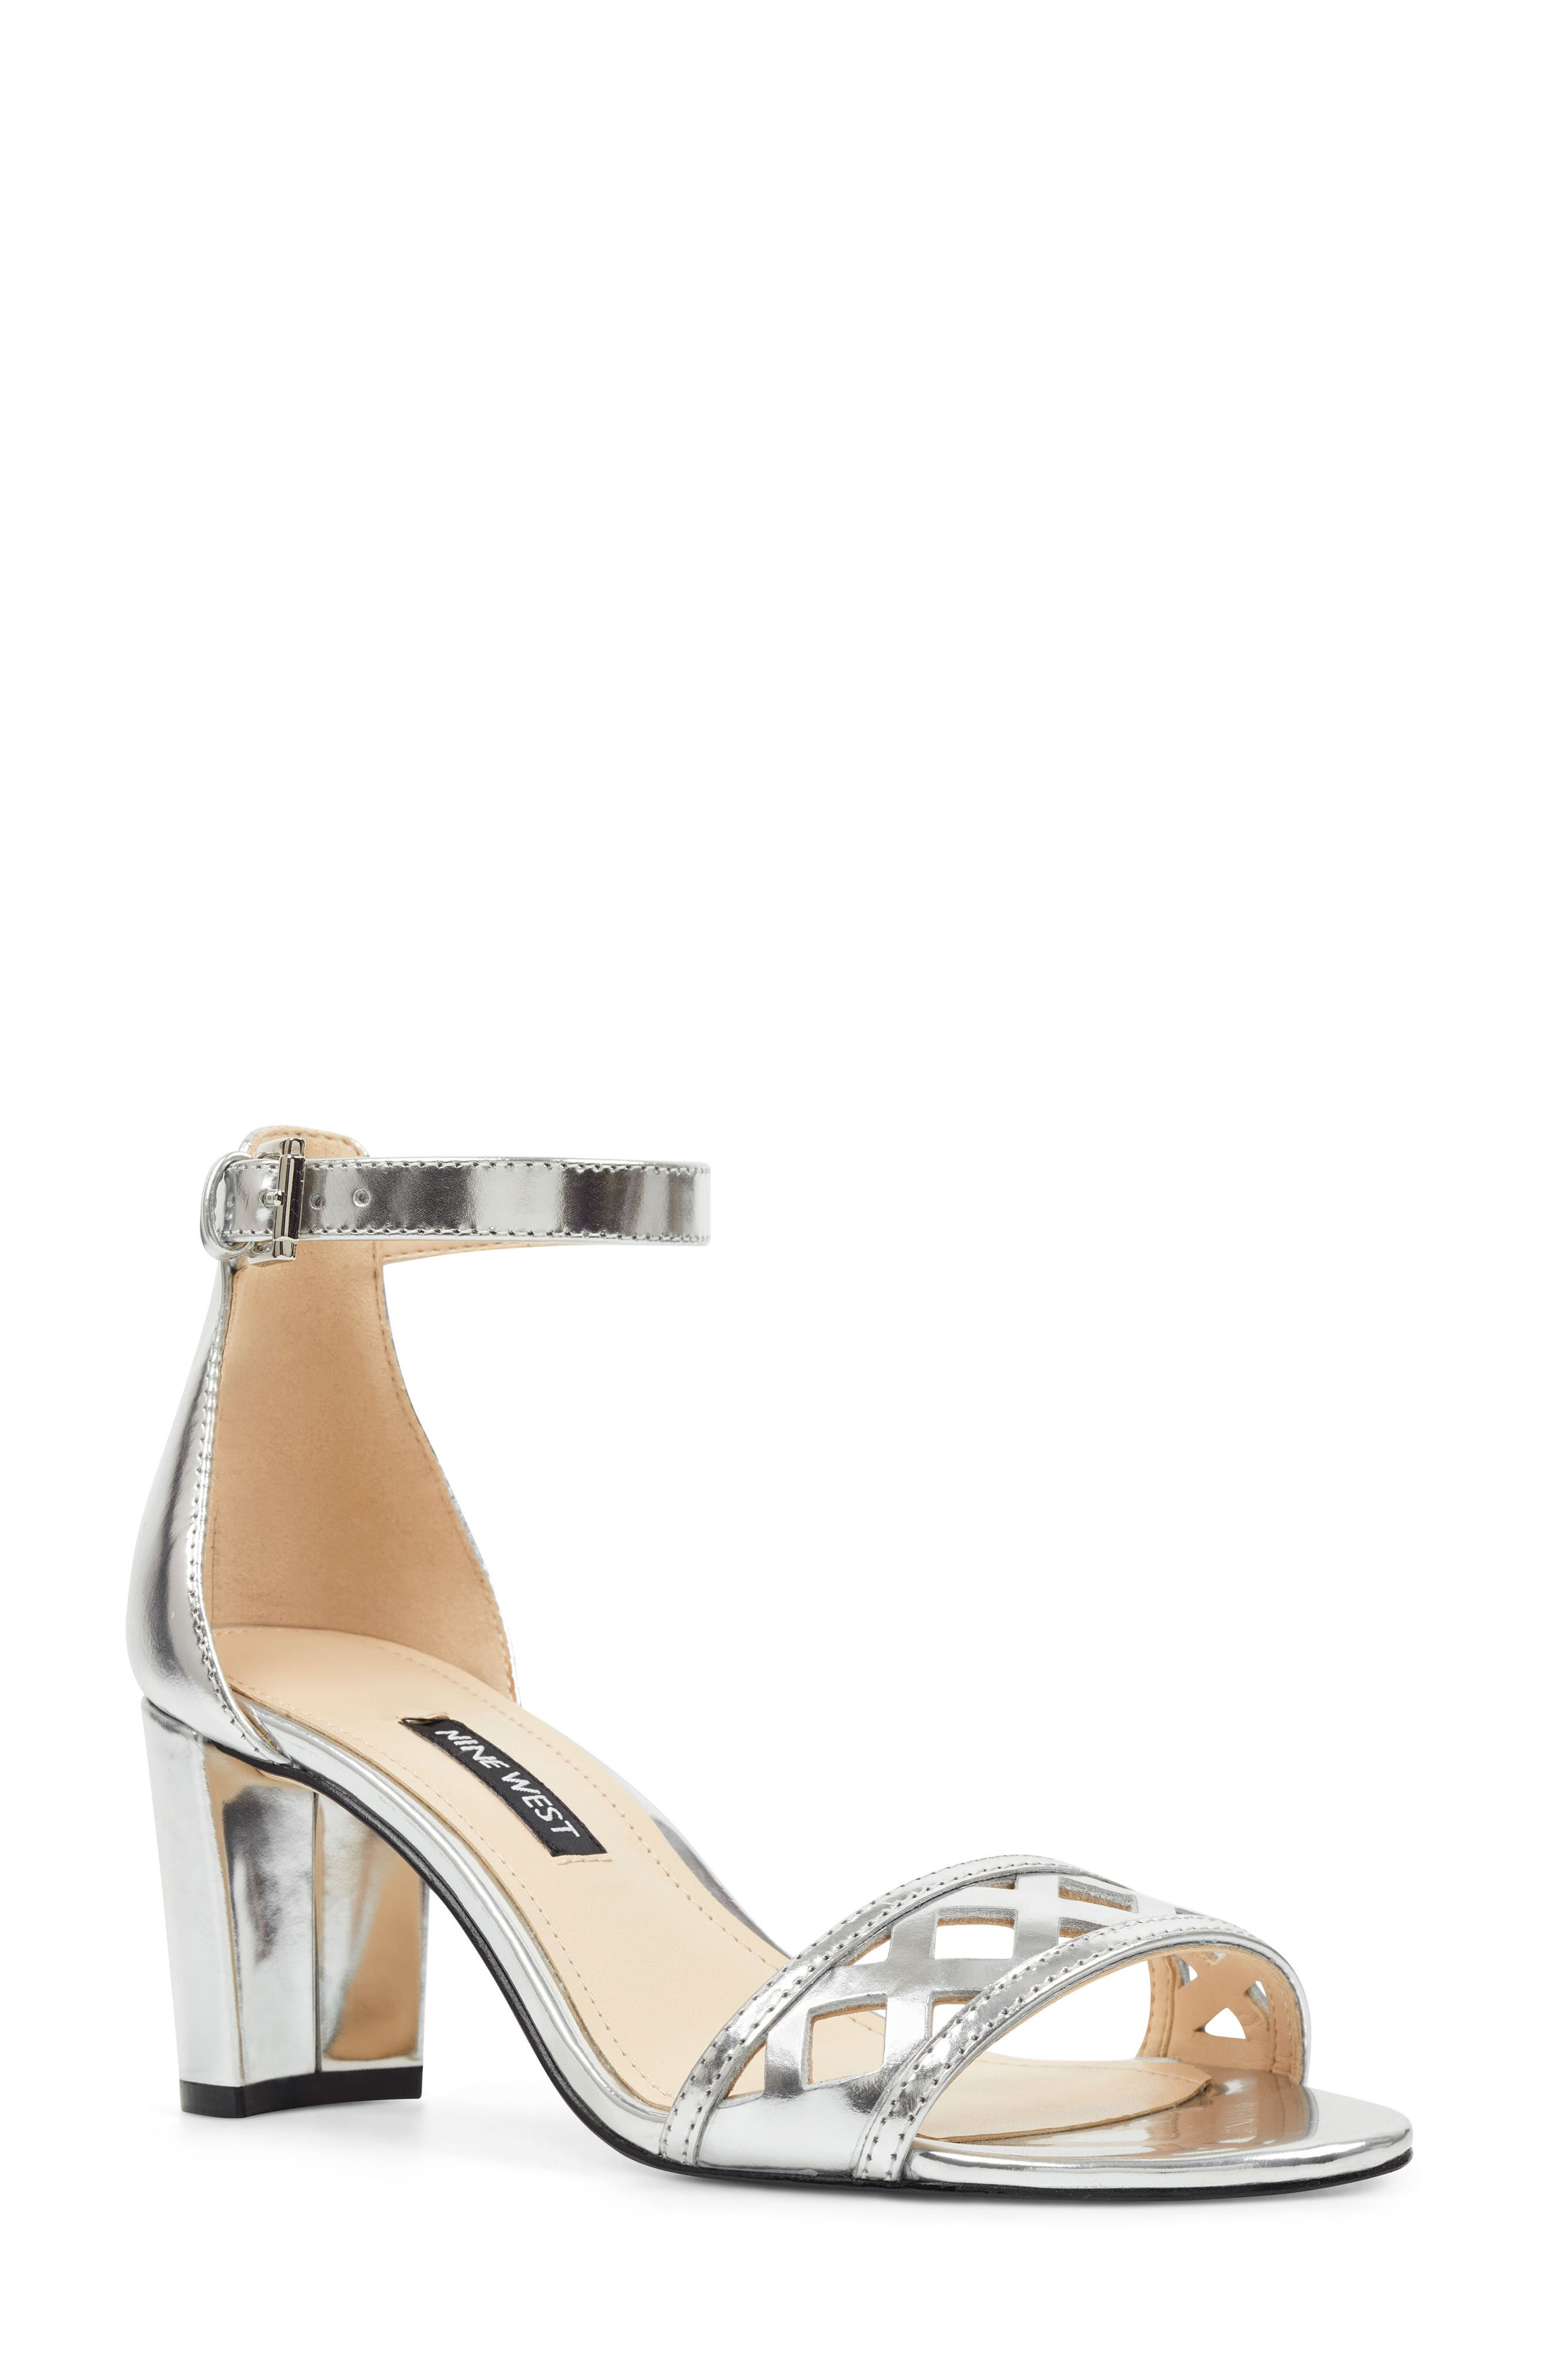 Nine West Paisley Perforated Ankle Strap Sandal, Metallic